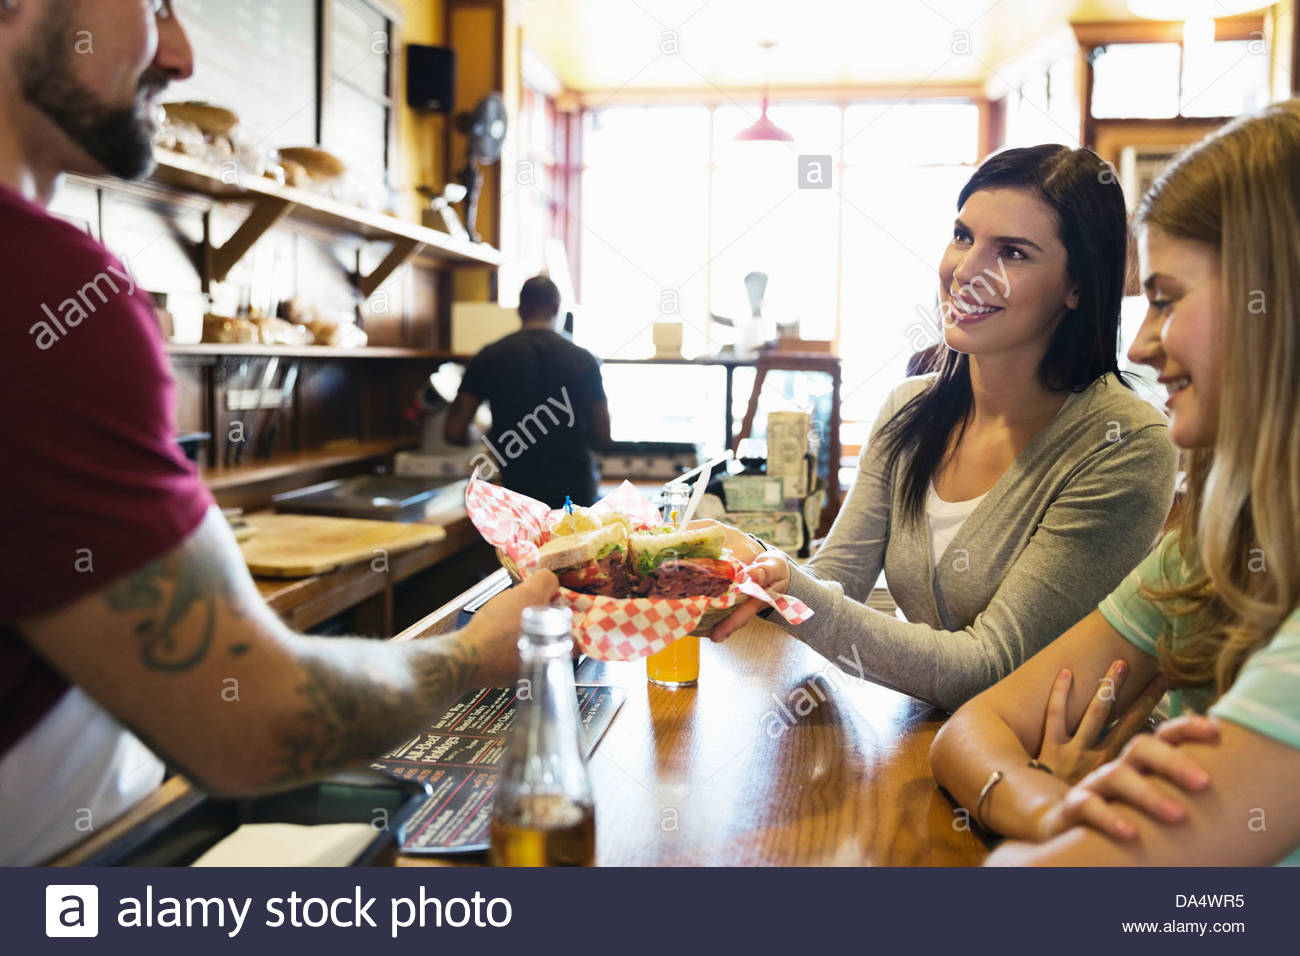 Male deli owner serving food to customers at counter - Stock Image